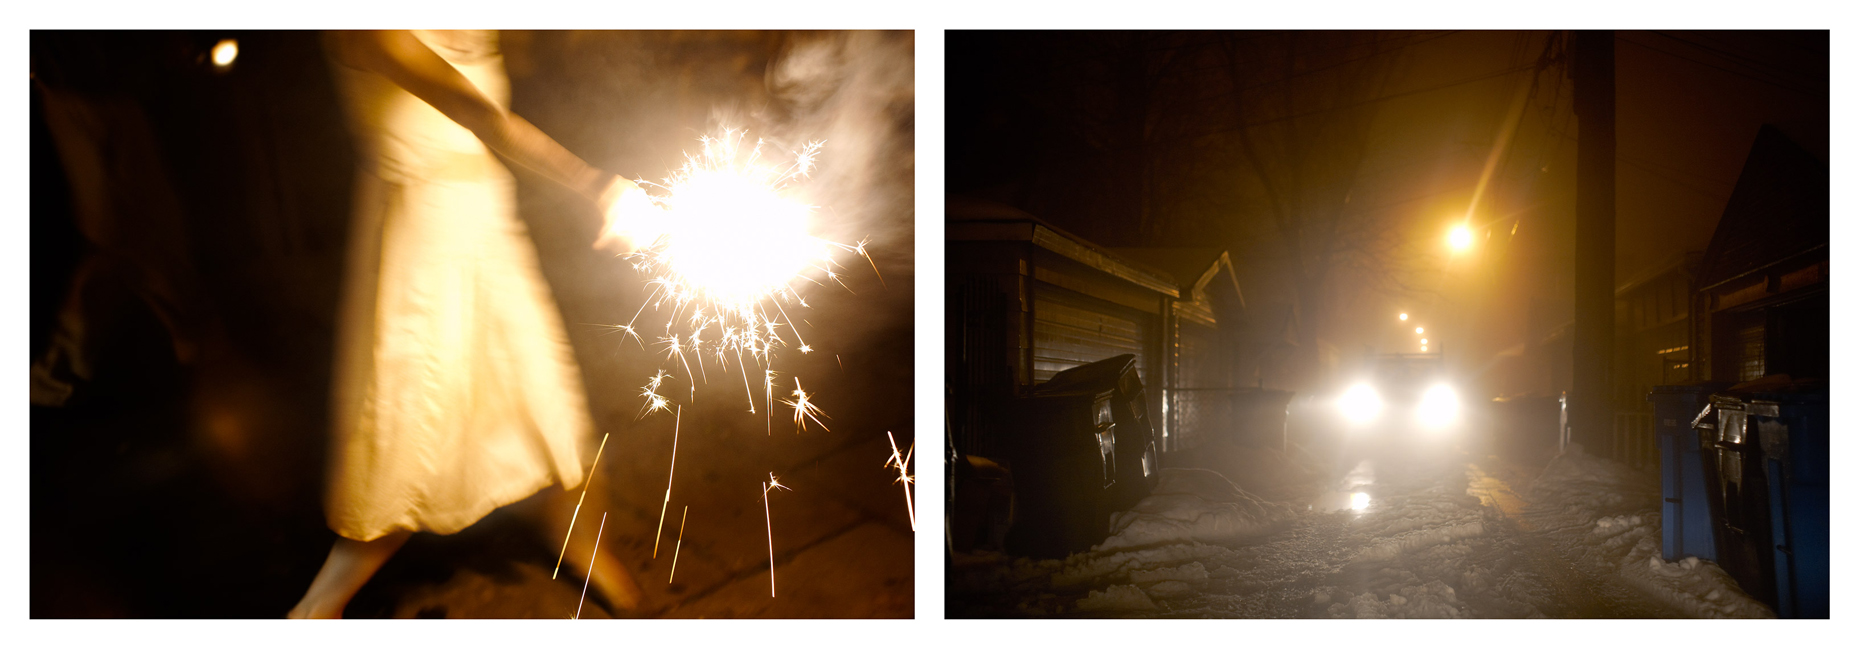 sparkler-headlights.jpg